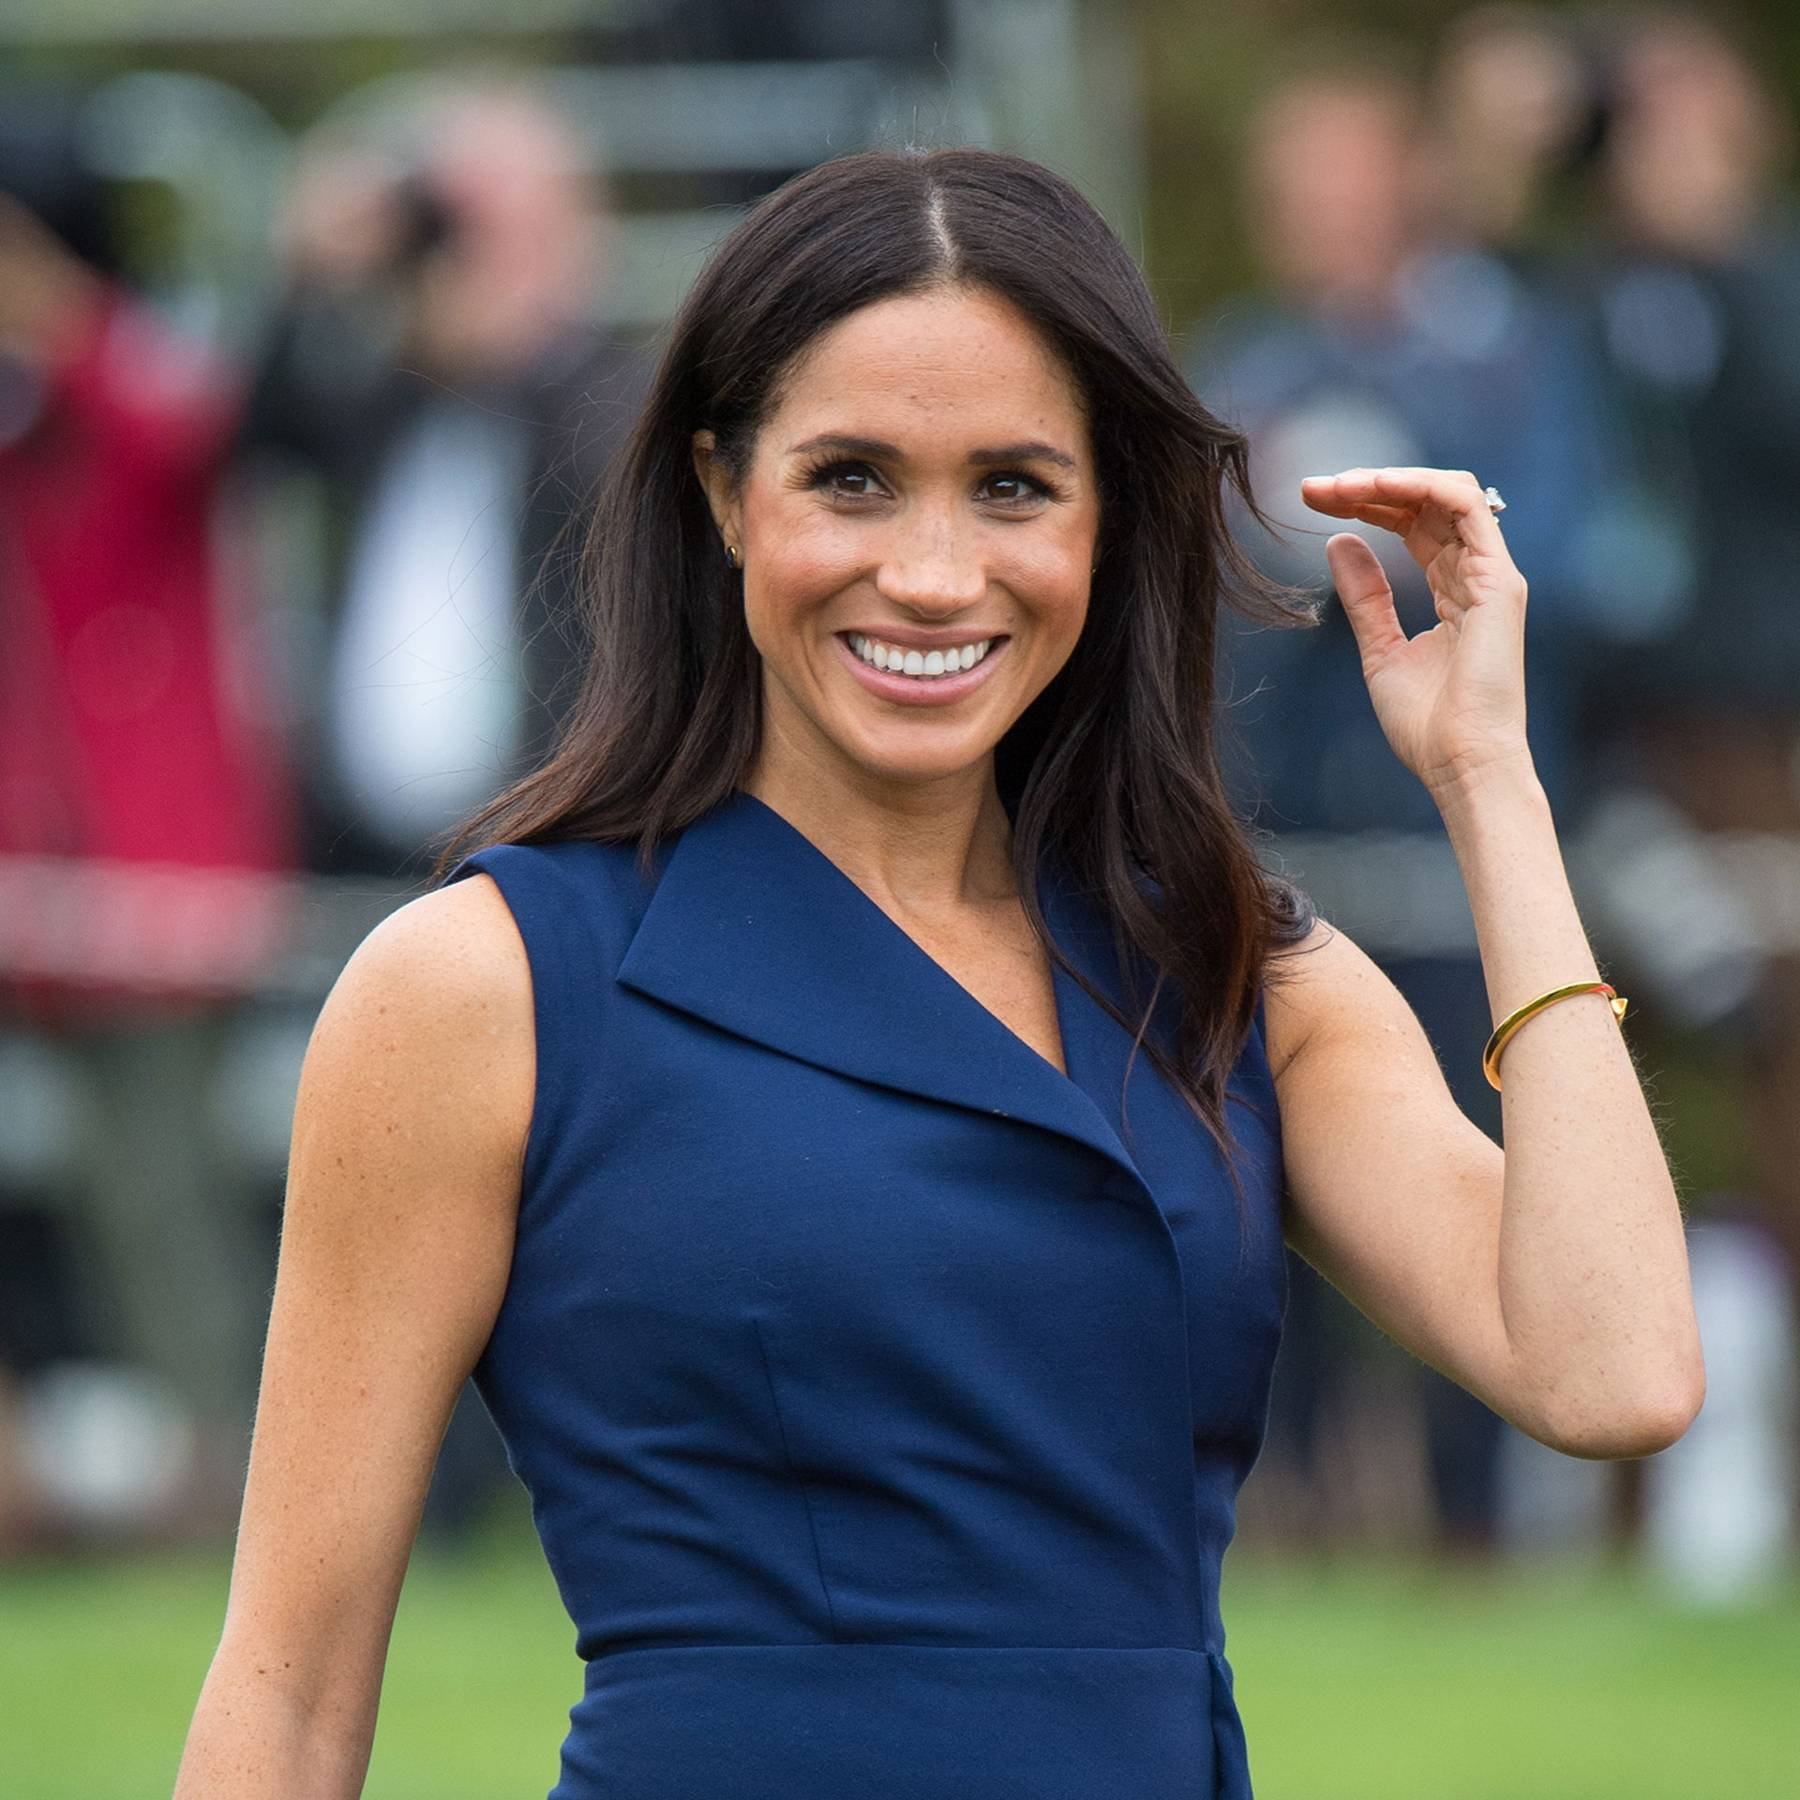 The Duchess of Sussex reignites her Hollywood connections to help launch new foundation